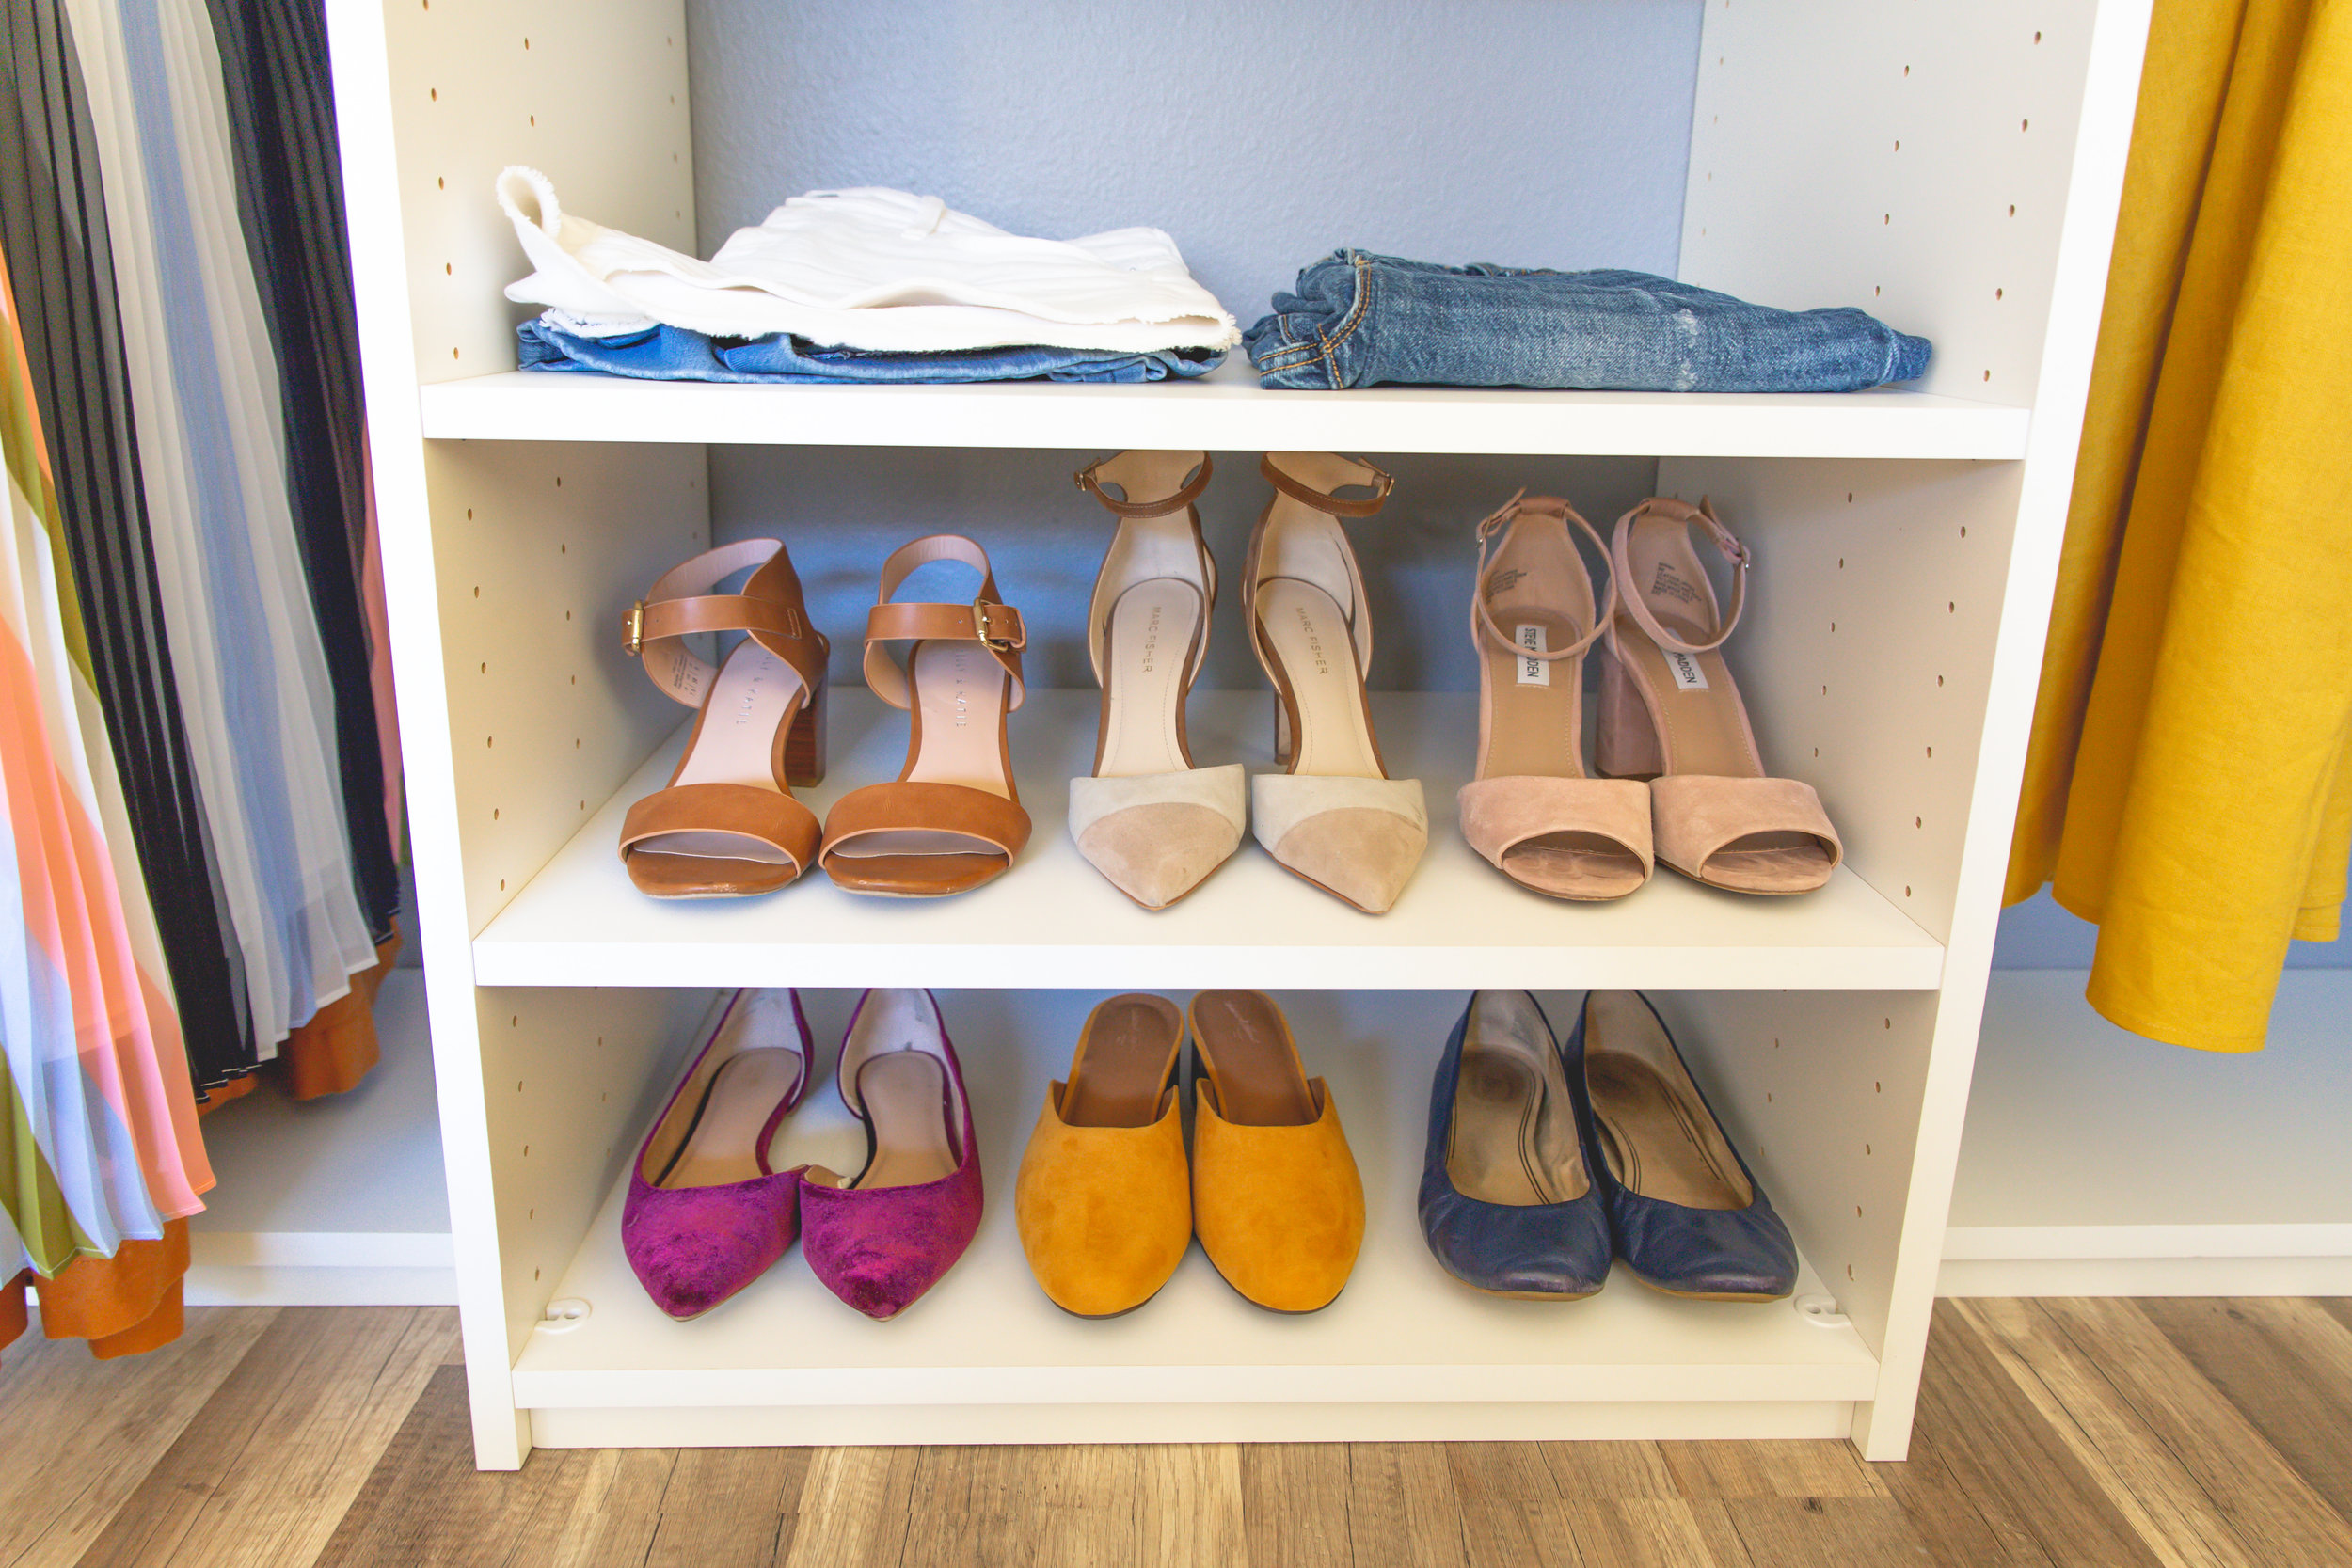 Denver Personal Stylist - 5 Steps to a Capsule Wardrobe 5-Day Video Challenge